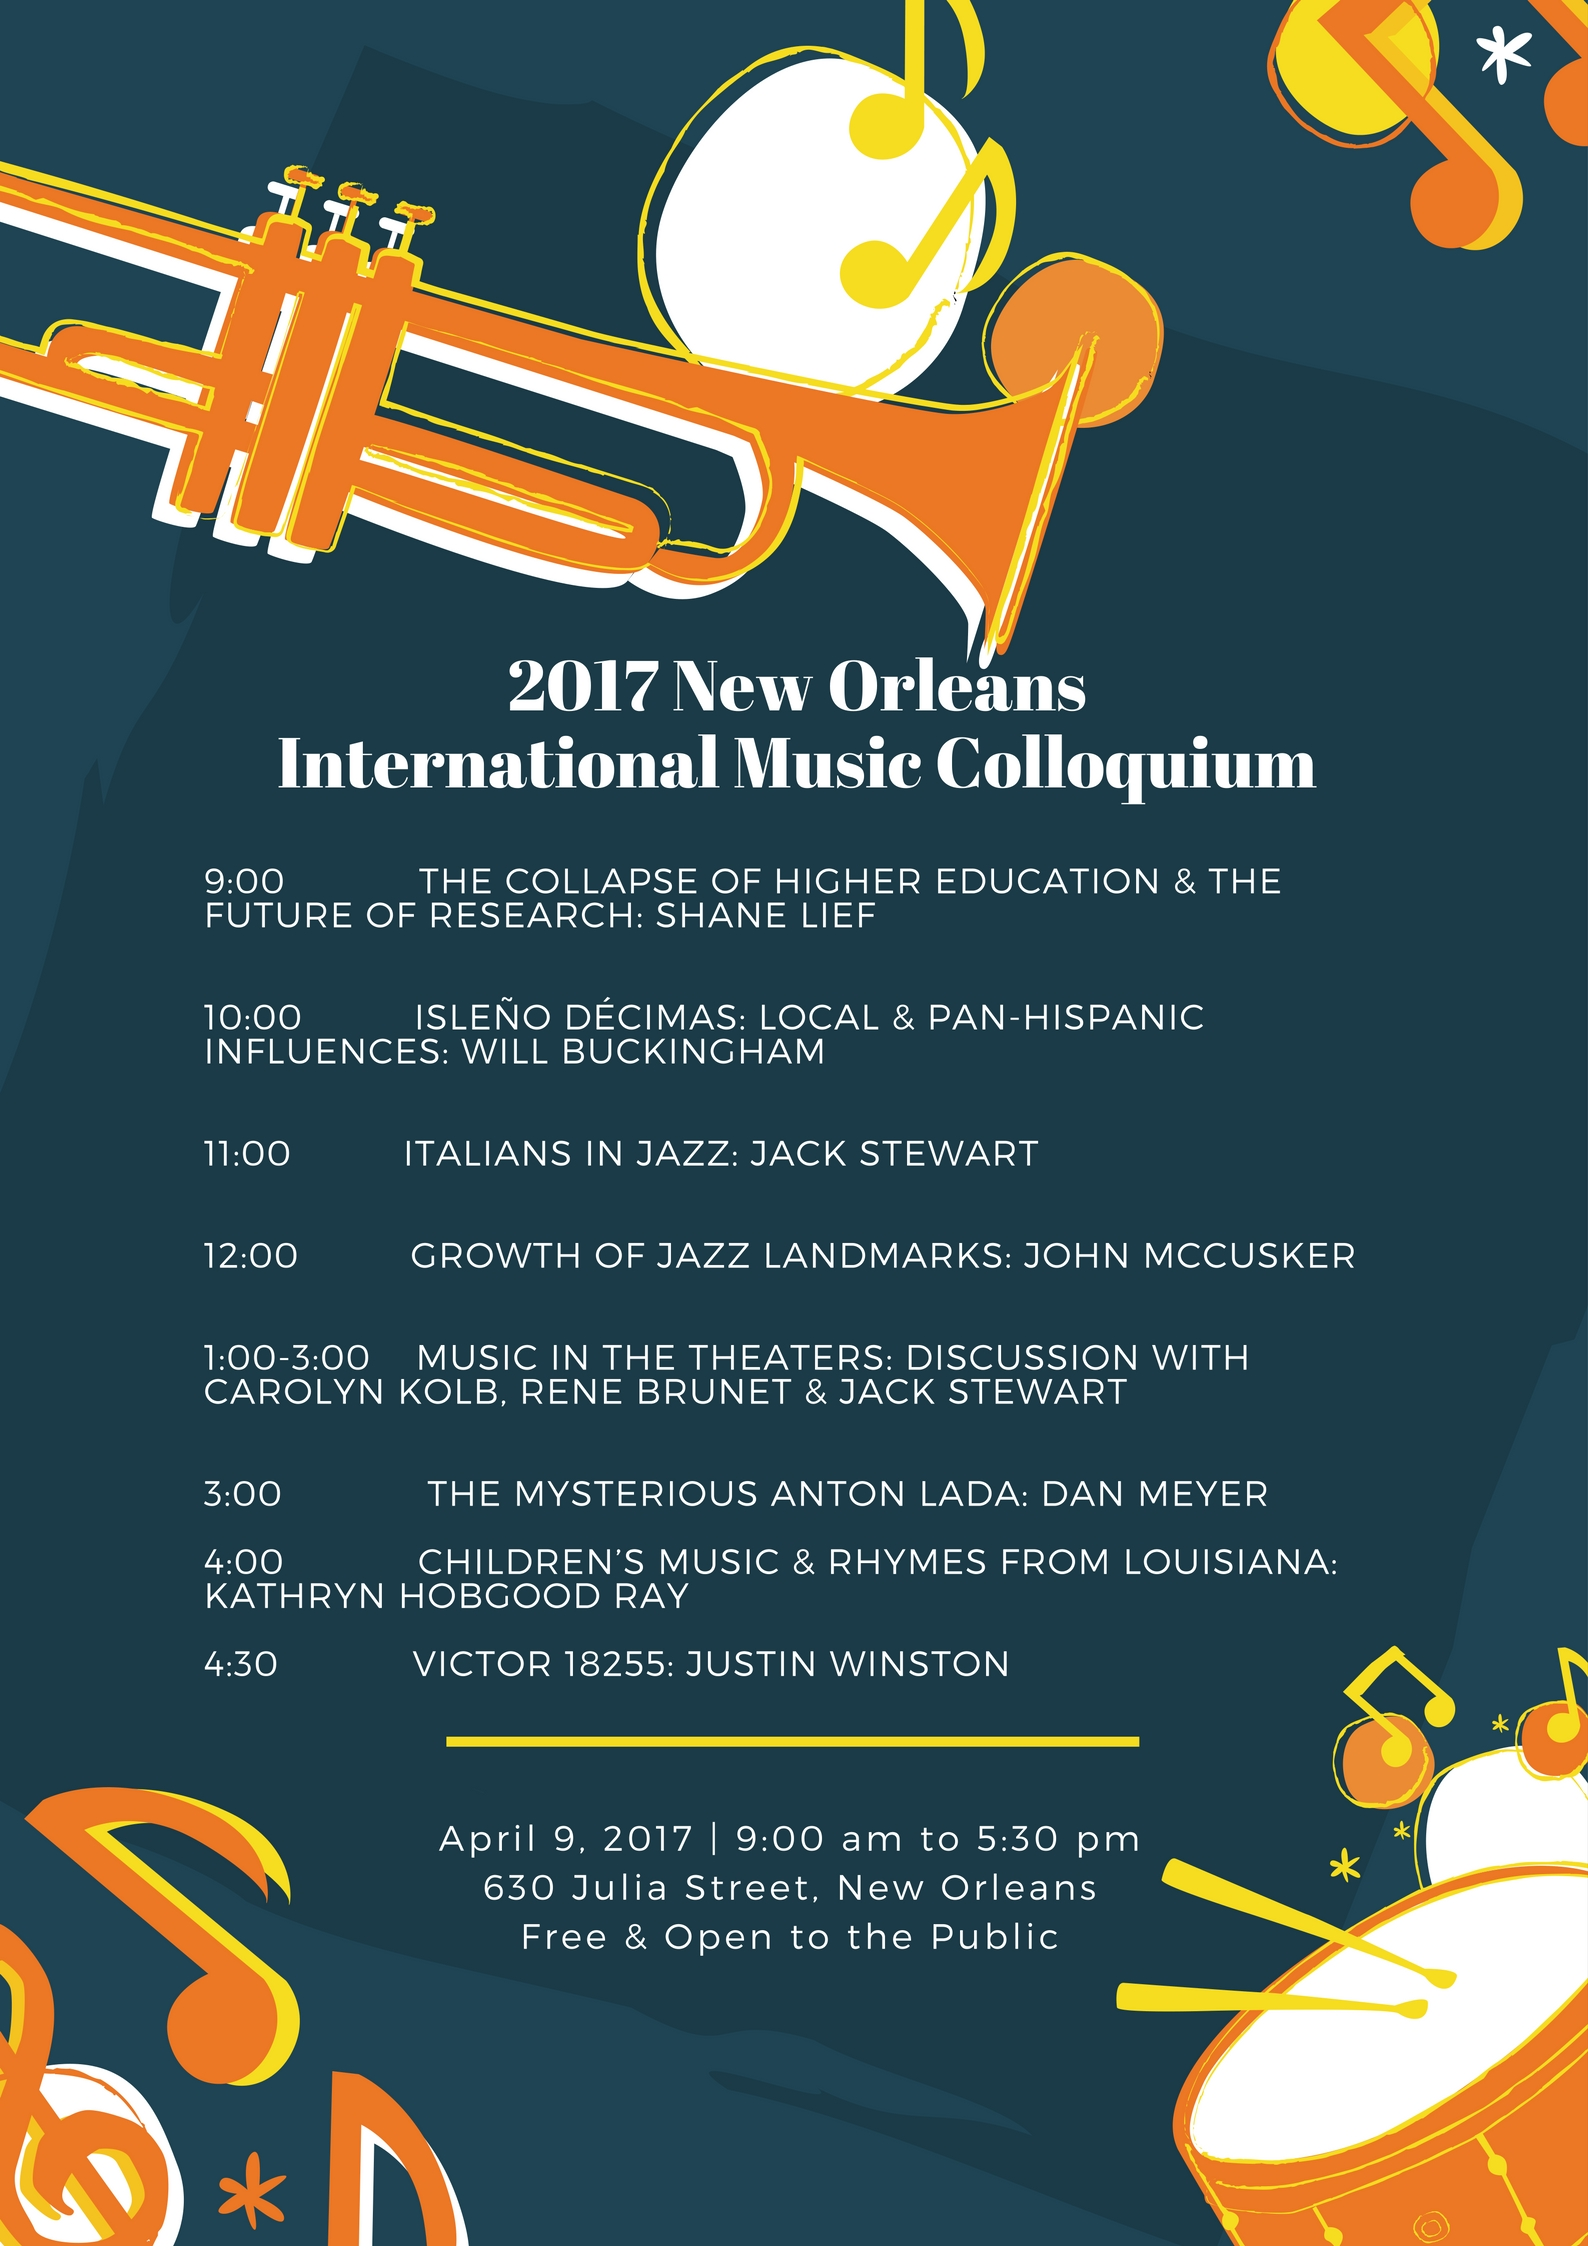 Lineup of presenters at the 2017 New Orleans International Music Colloquium